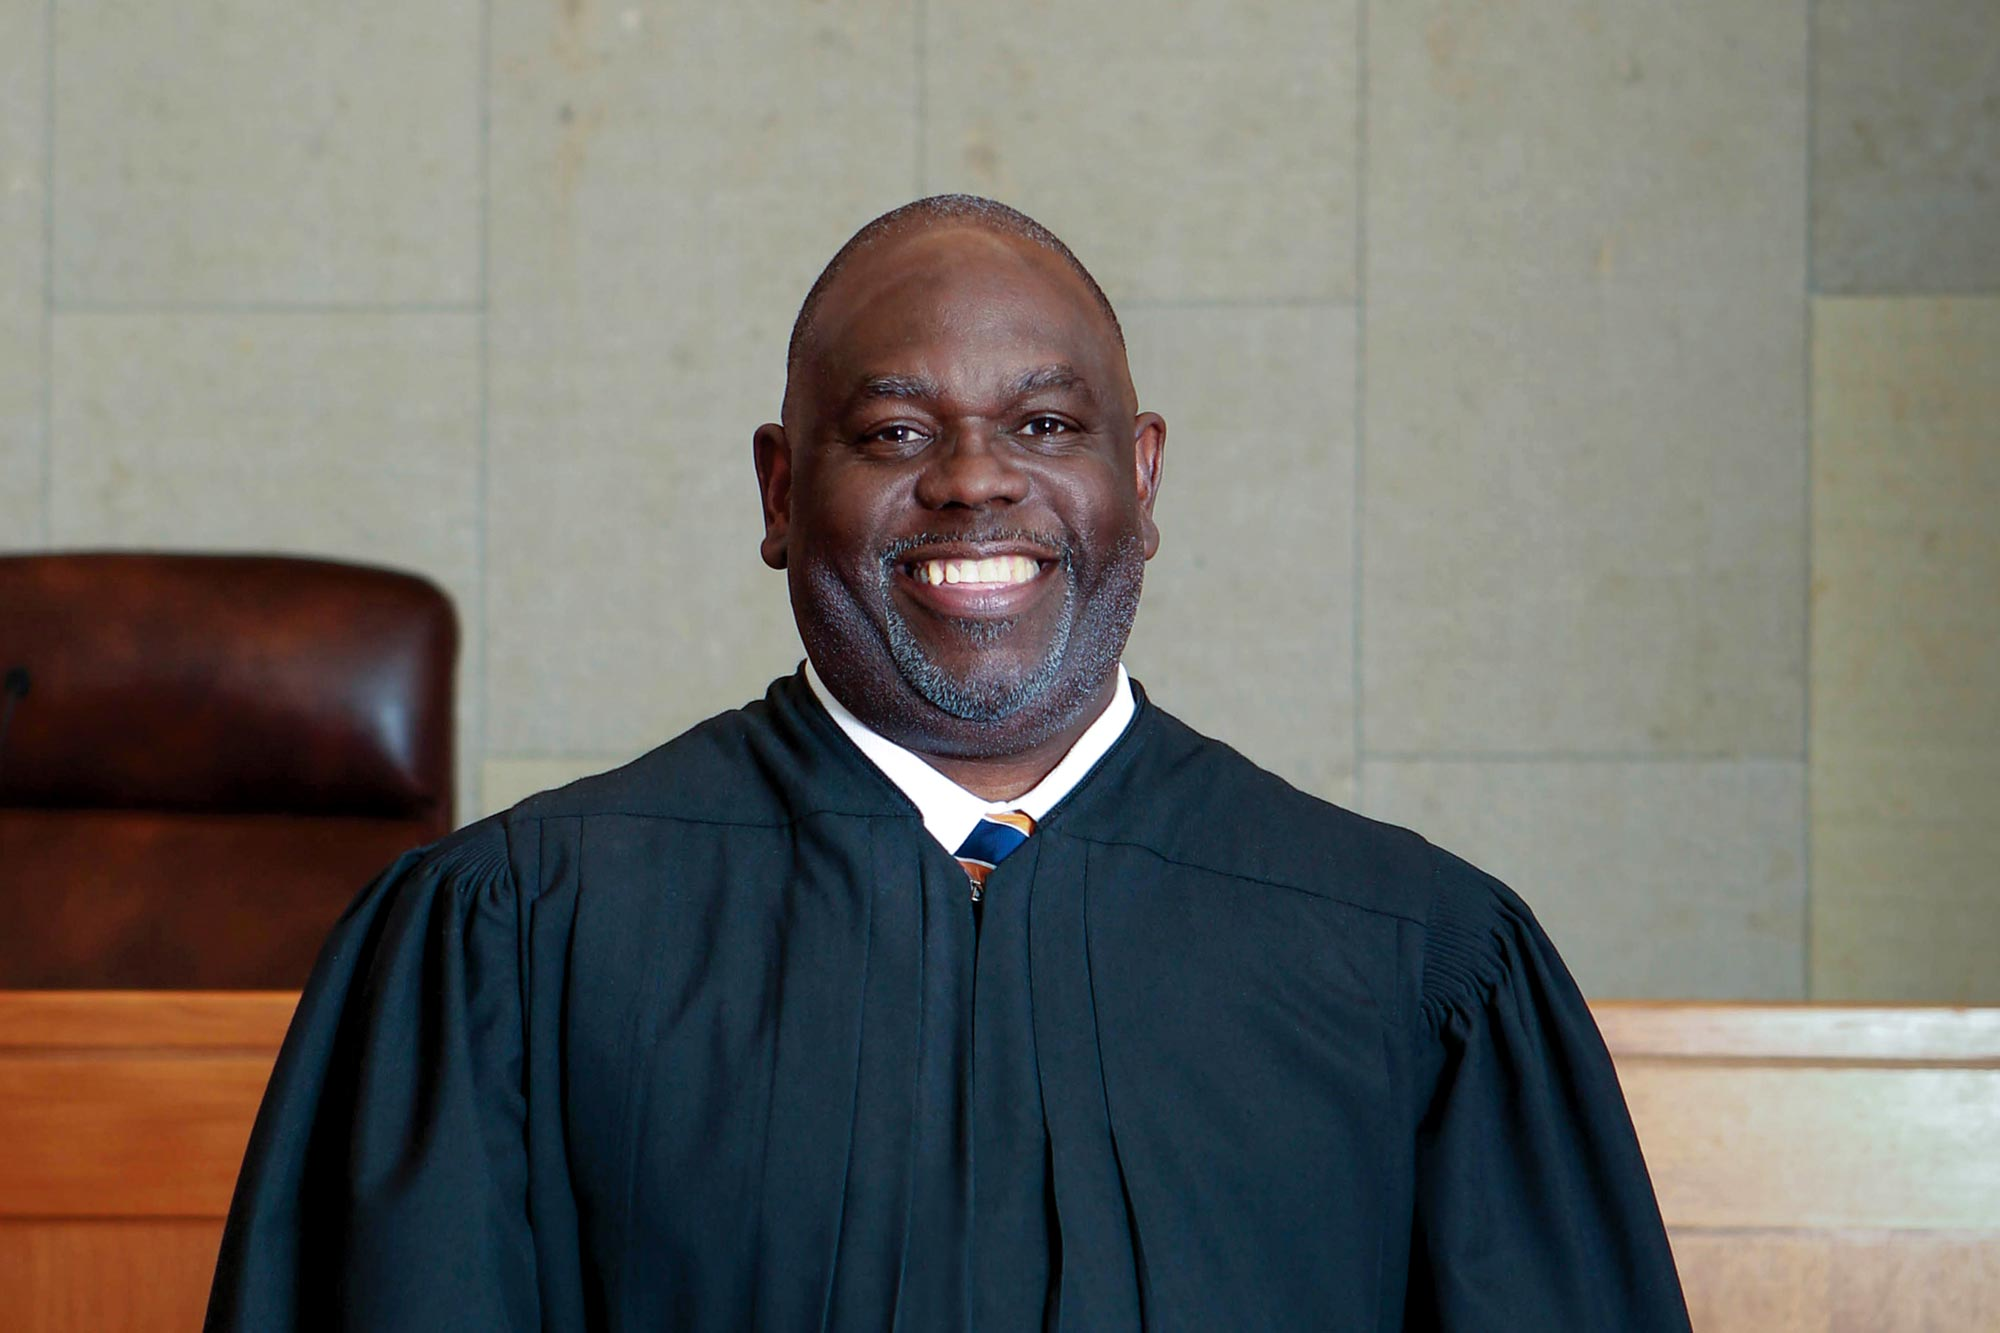 This UVA-Grad-Turned-Judge Brings 'Moral Force' to the Bench